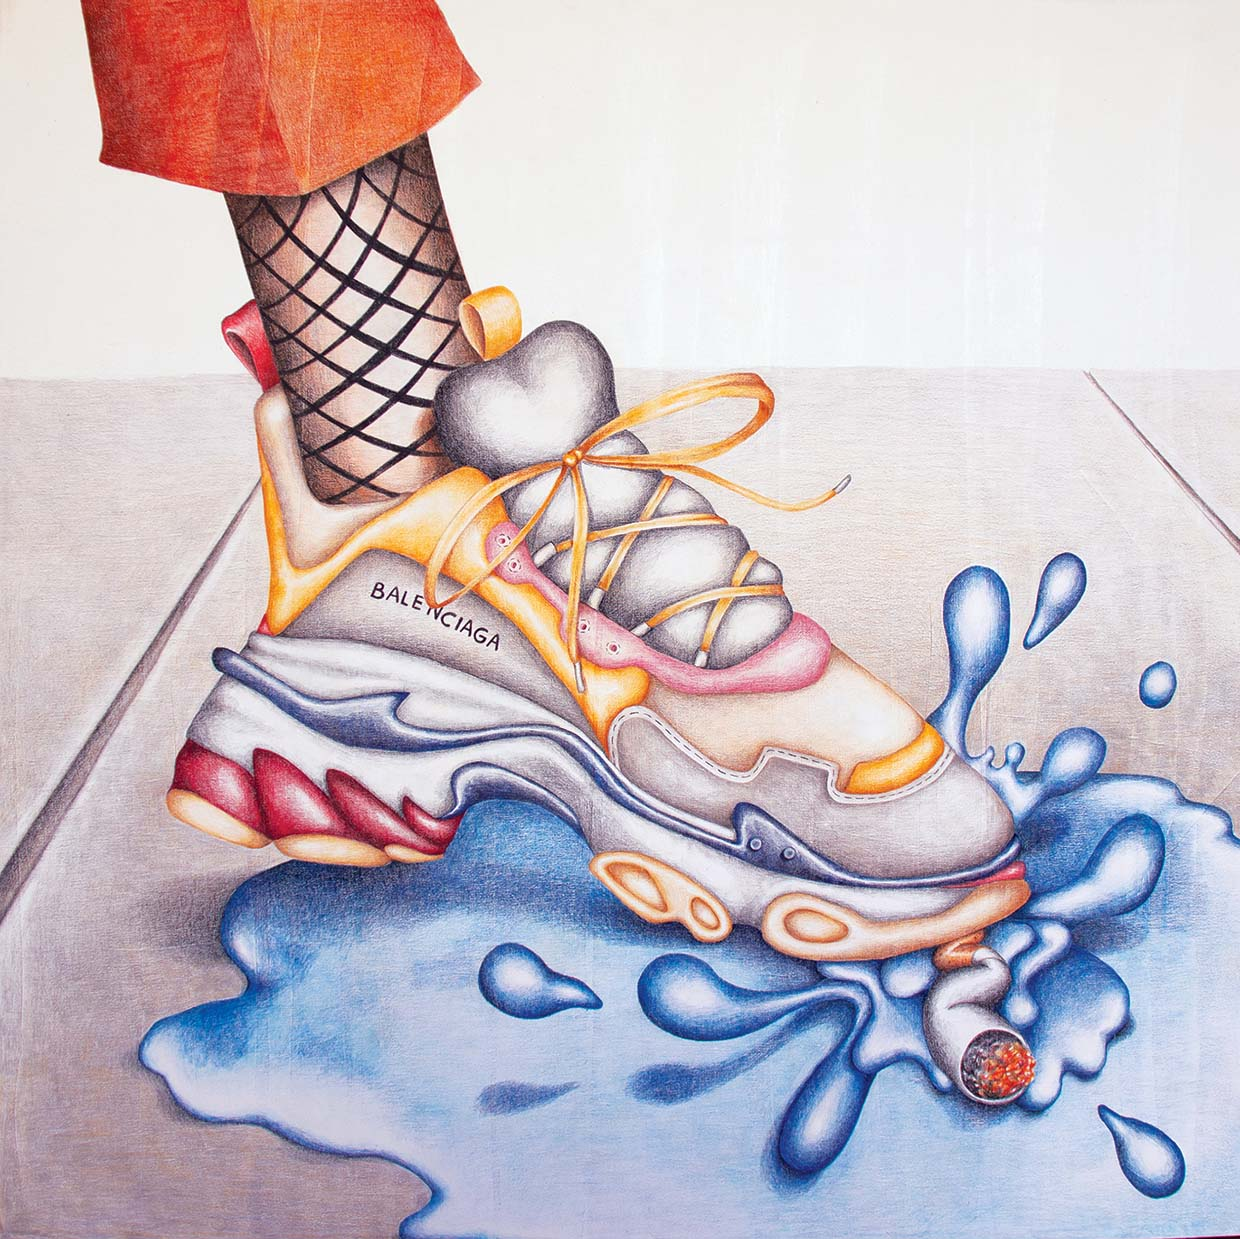 Samantha Rosenwald, Lemme Splash, 2018, colored pencil on canvas, 36x36